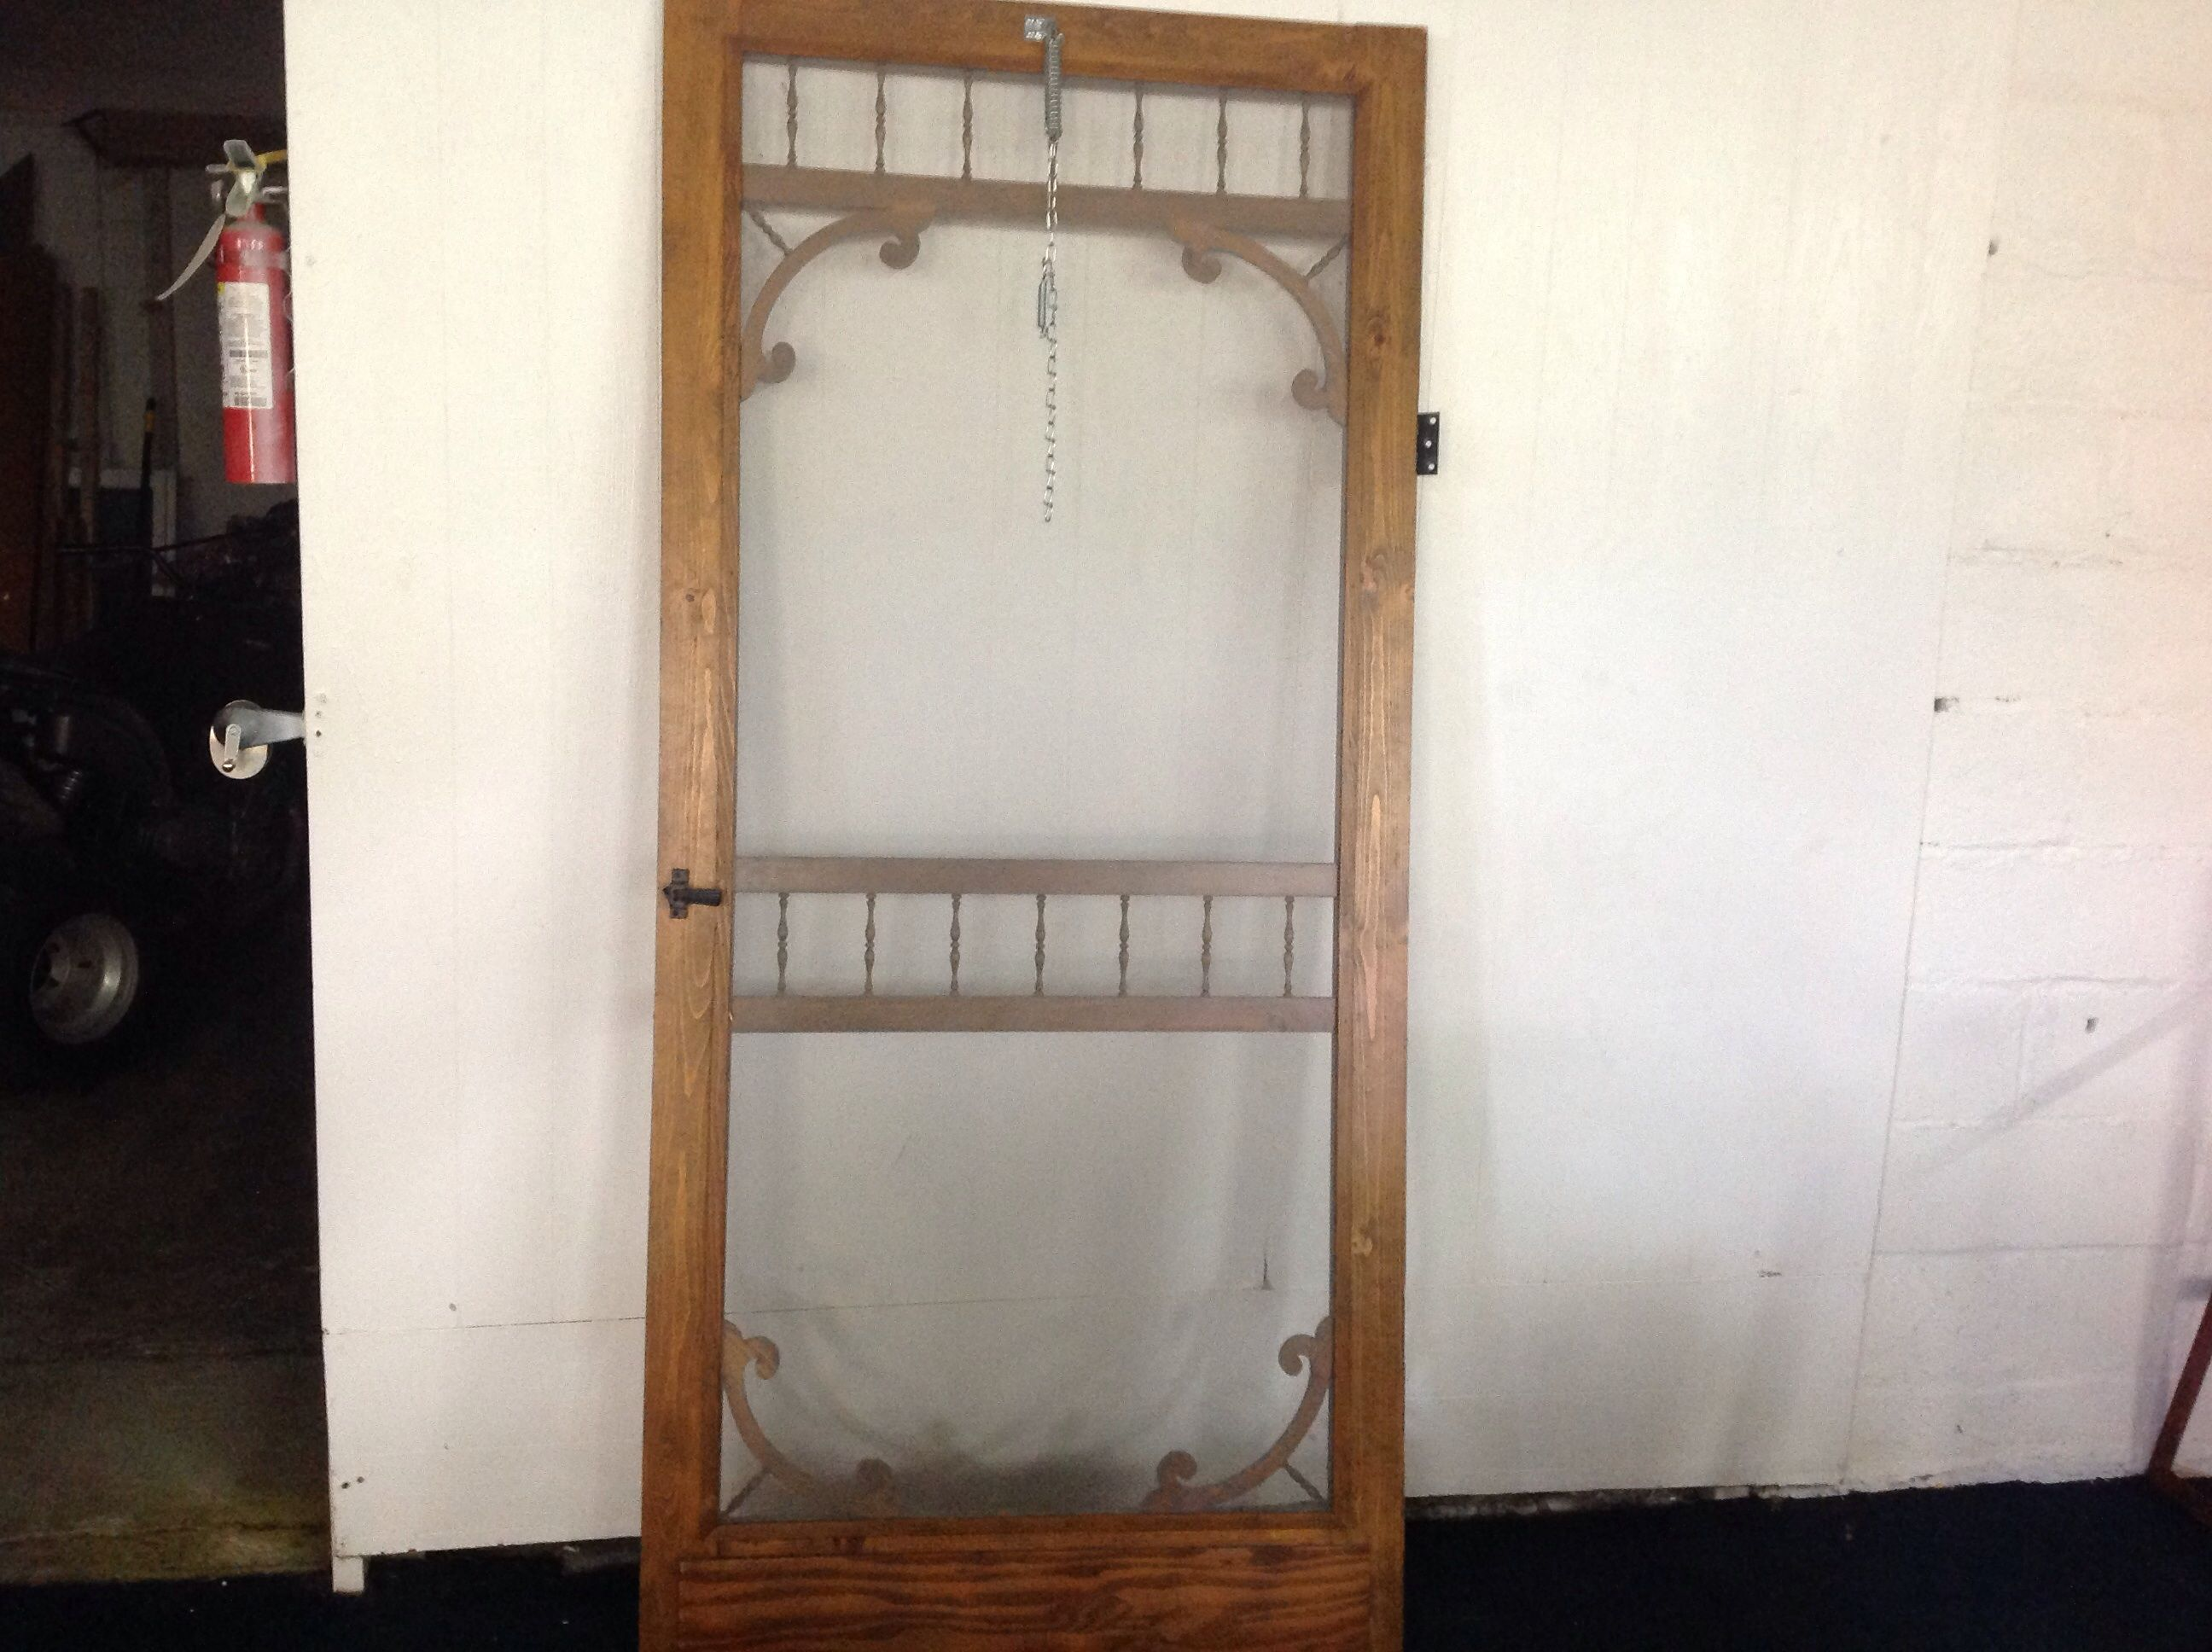 Marvelous photograph of Lot Detail WOODEN SCREEN DOOR WITH HARDWARE with #693F27 color and 2592x1936 pixels